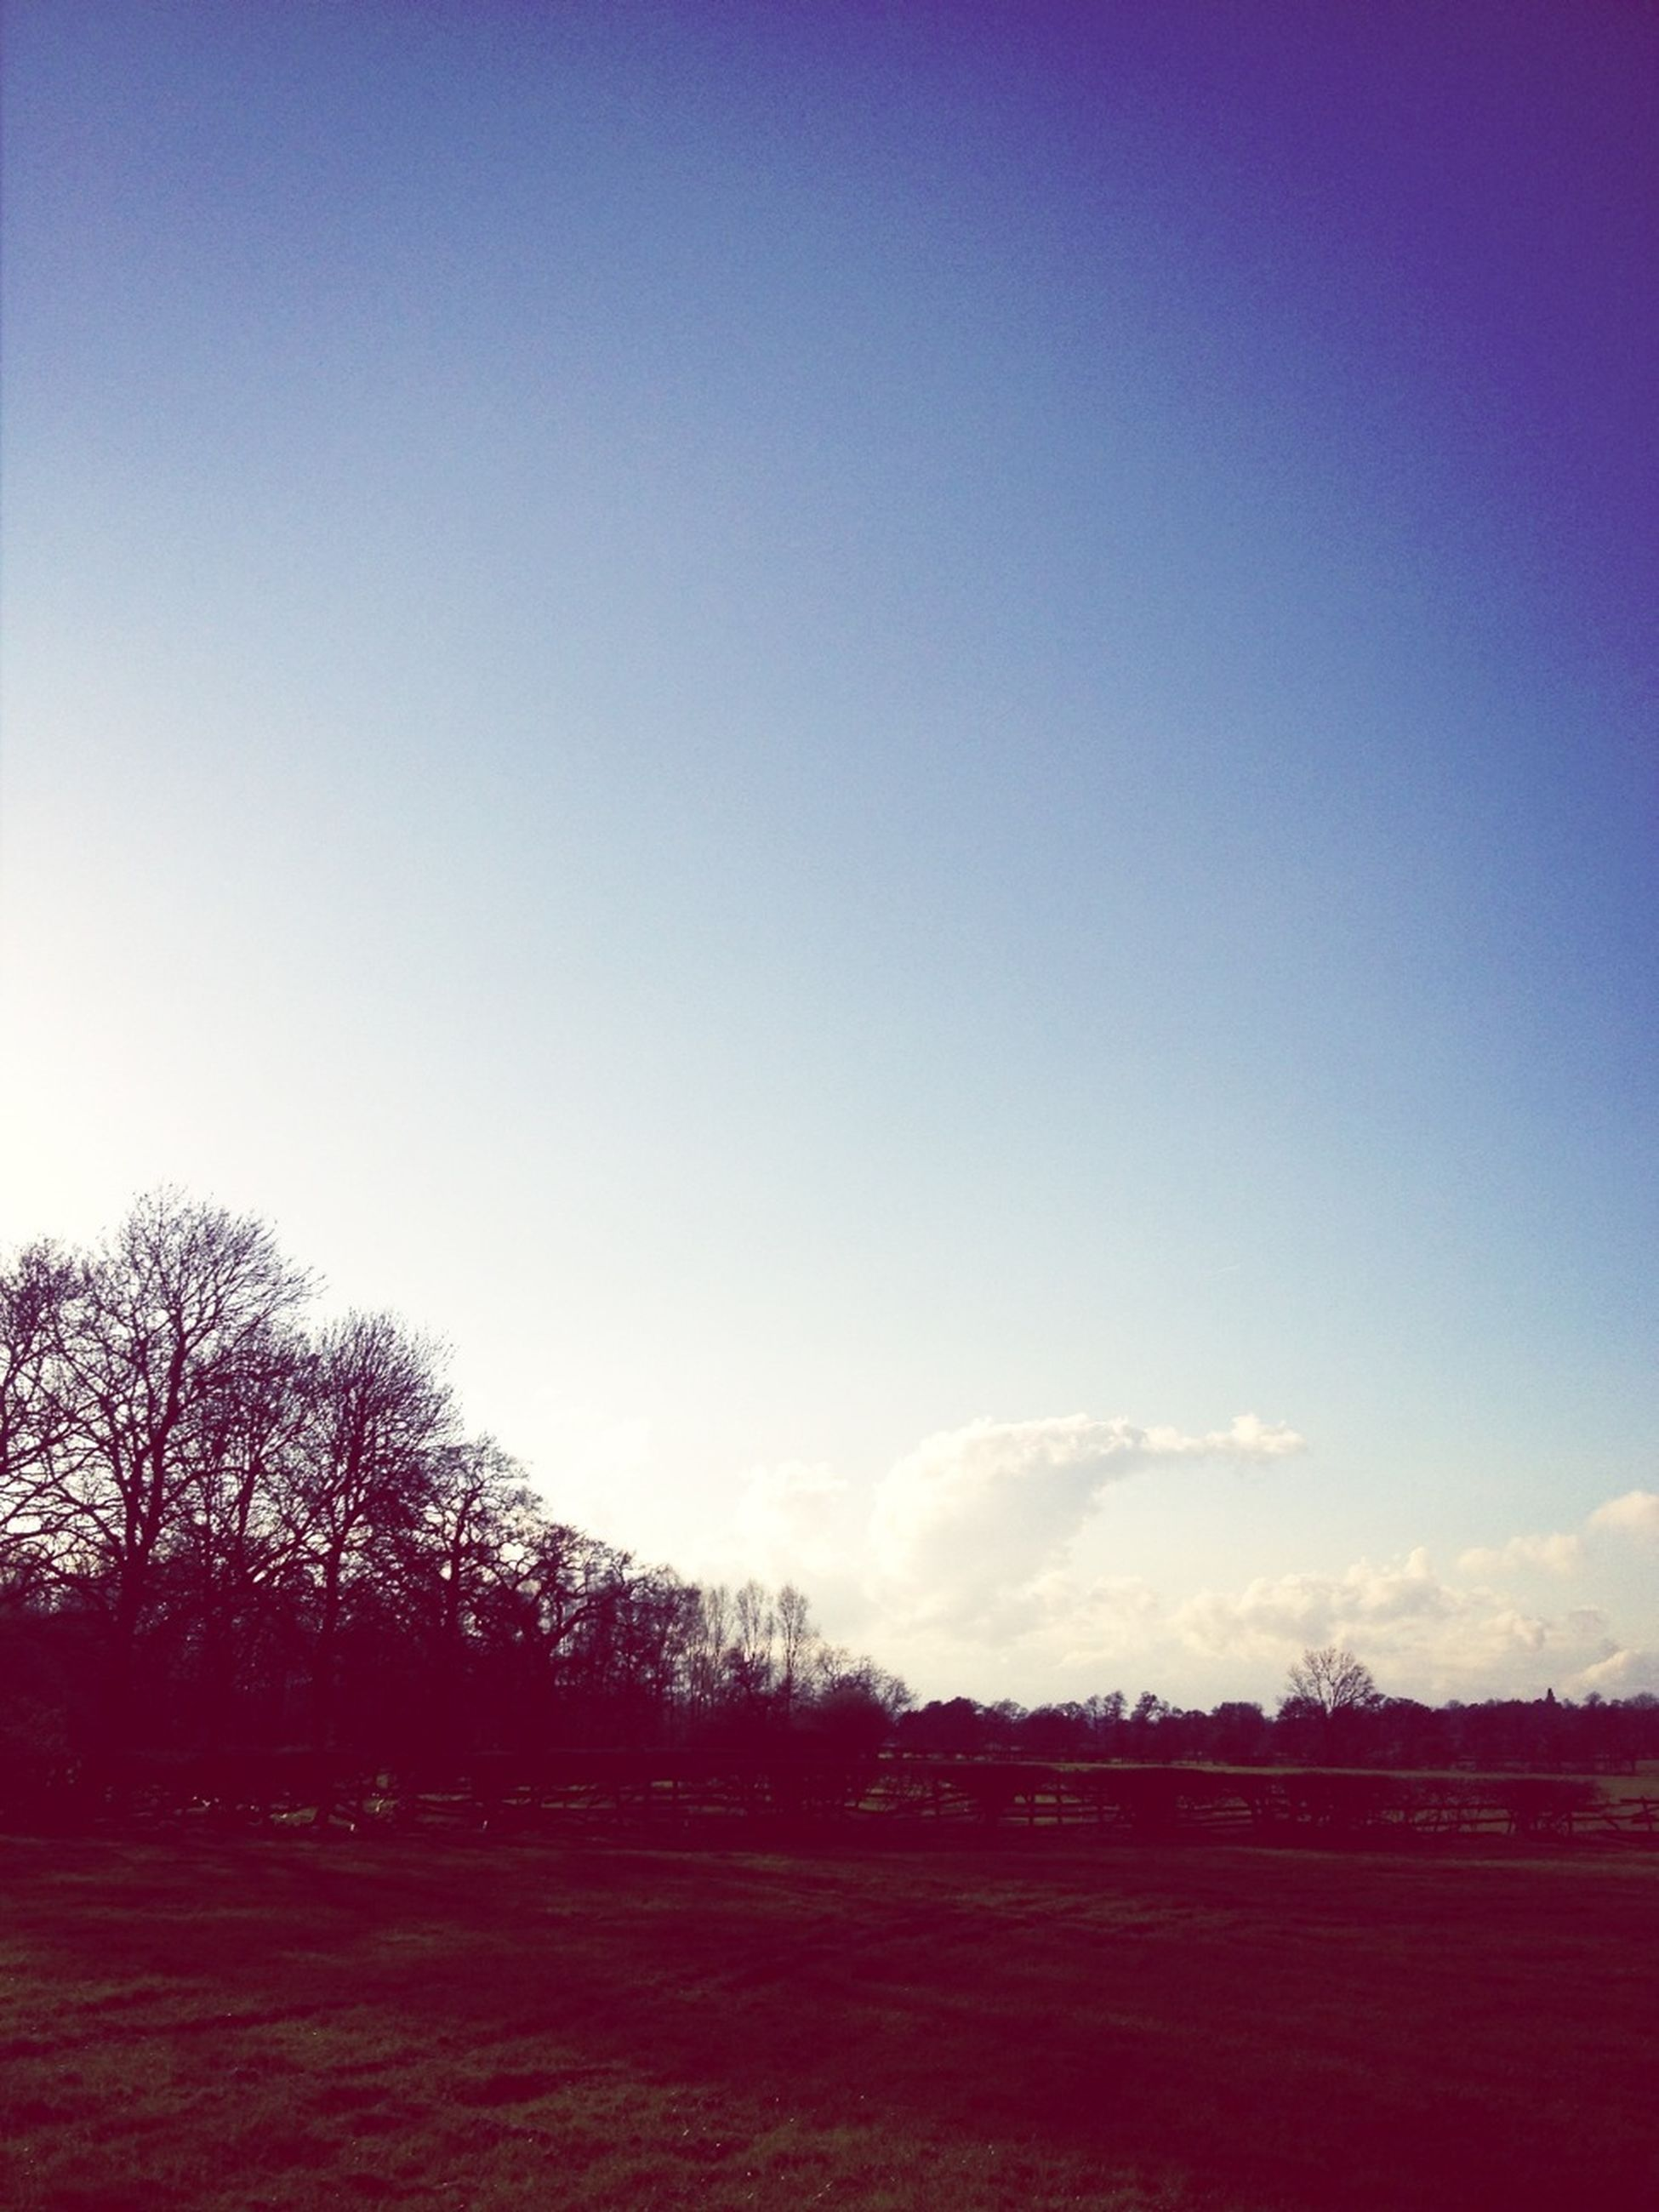 copy space, clear sky, tree, blue, tranquility, tranquil scene, landscape, sky, field, scenics, beauty in nature, nature, silhouette, road, outdoors, dusk, no people, non-urban scene, remote, sunset